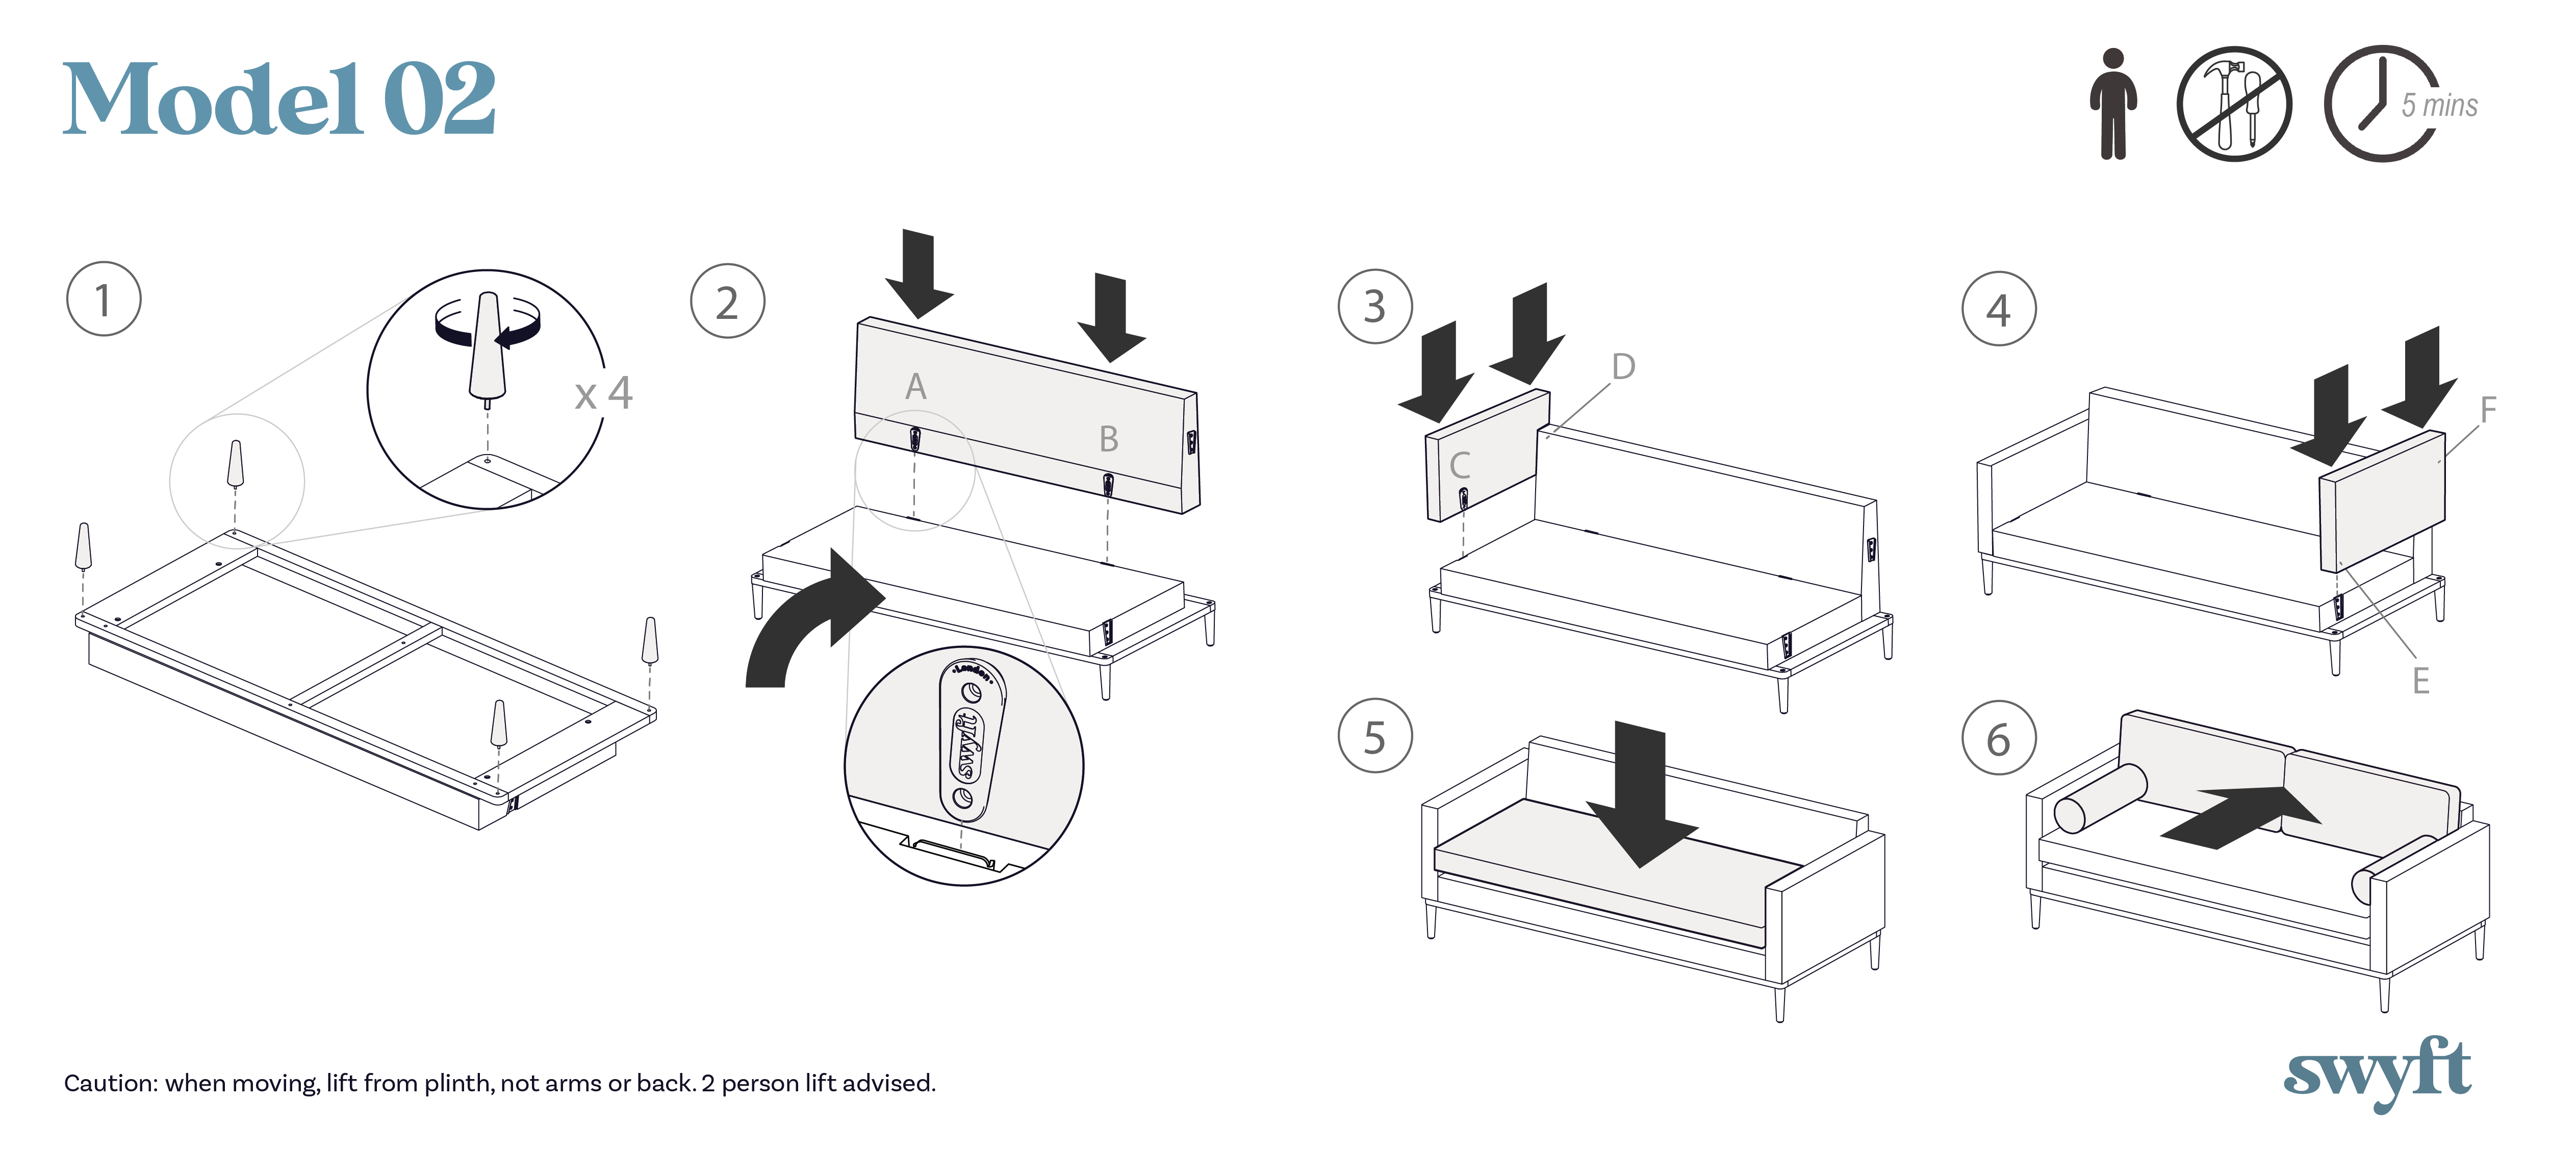 Model 02 sofa assembly instruction drawings